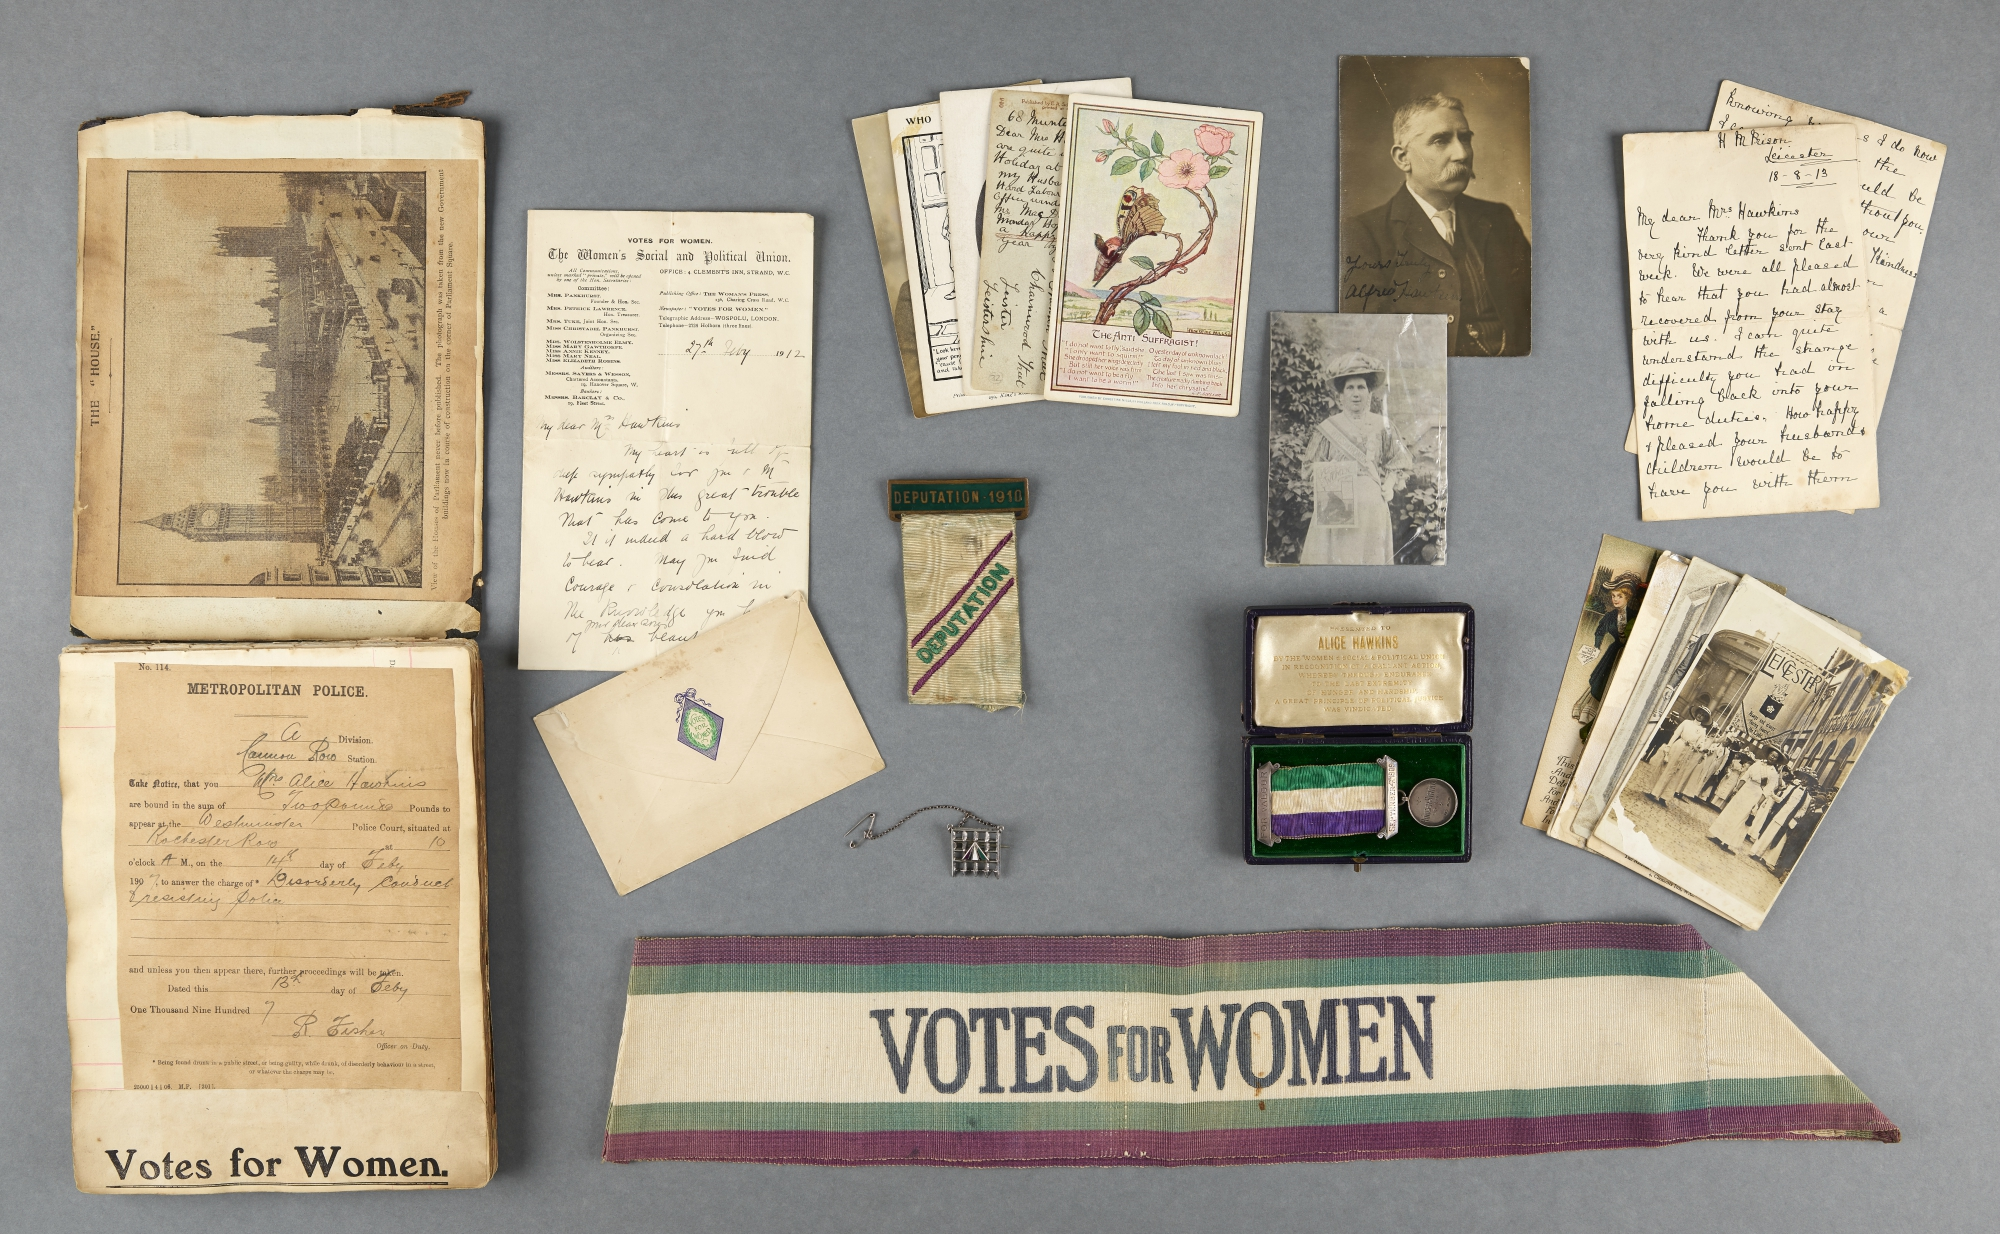 Items belonging to Alice Hawkins. Alice was a machinist at the shoe factory in Leicester. She was a socialist, trade unionist and WSPU campaigner. She was imprisoned five times for her role in WSPU protests.